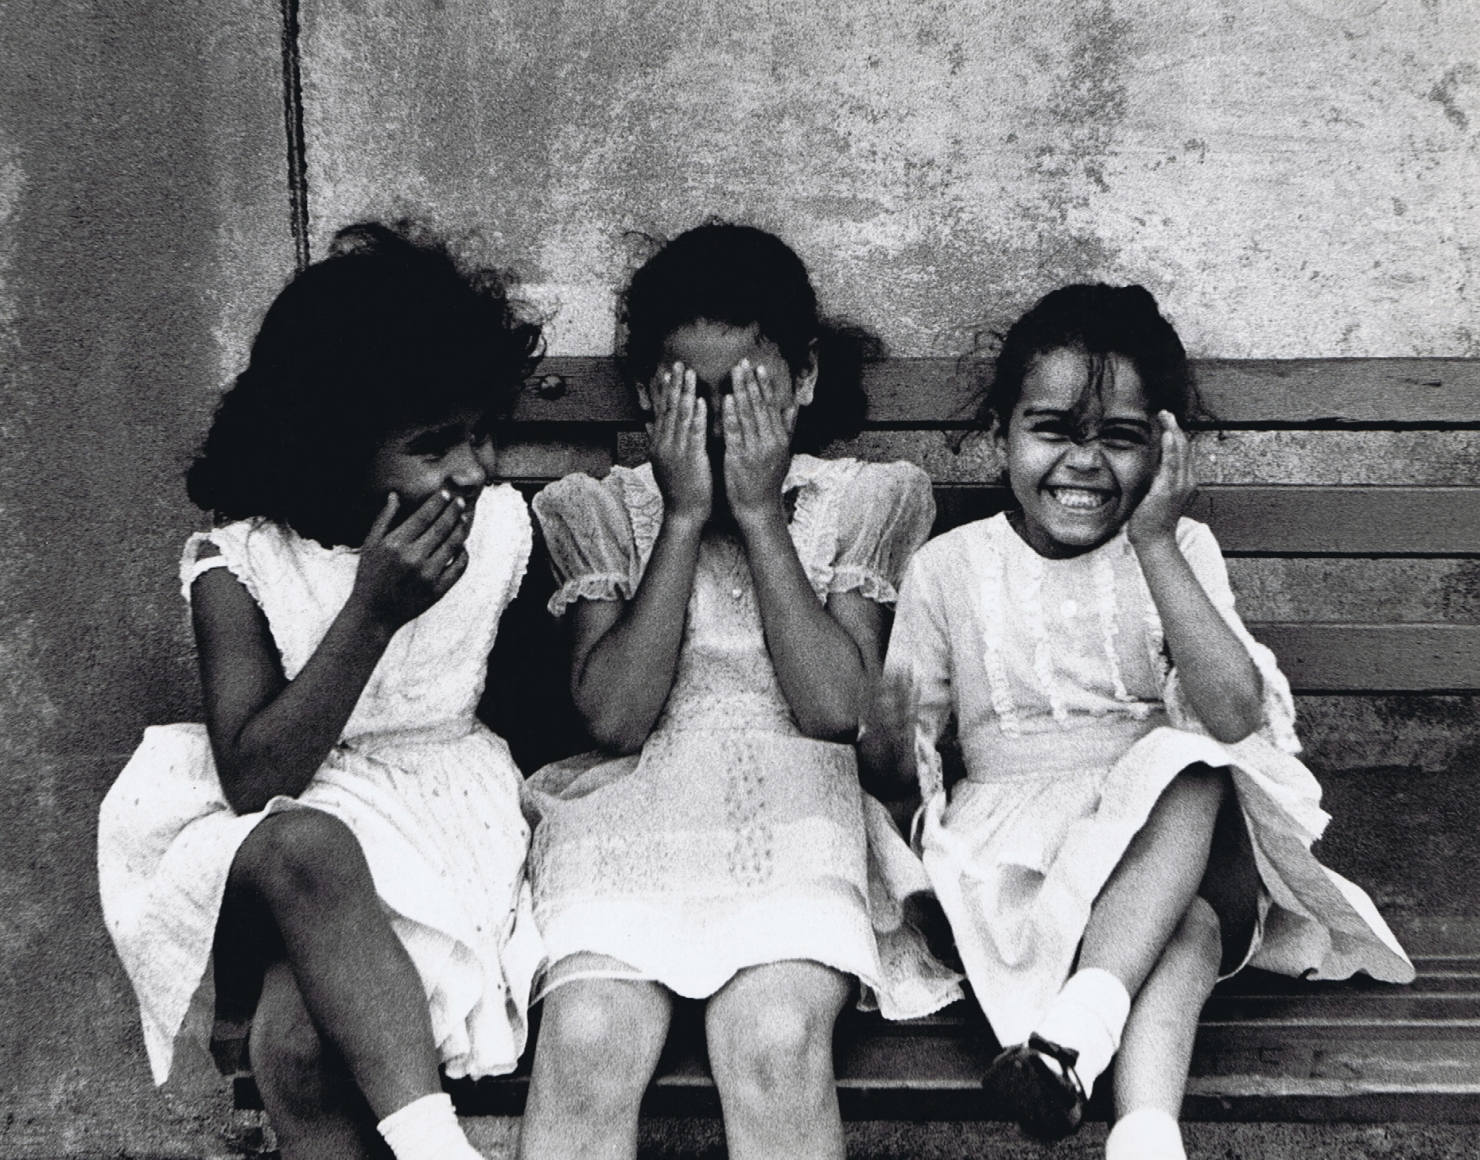 35. Beuford Smith, Three Girls, Bronx, 1968. Three girls in white dresses seated on a bench. From left to right, one has a hand to her mouth, the next has hands covering her eyes, the last has one hand covering an ear.